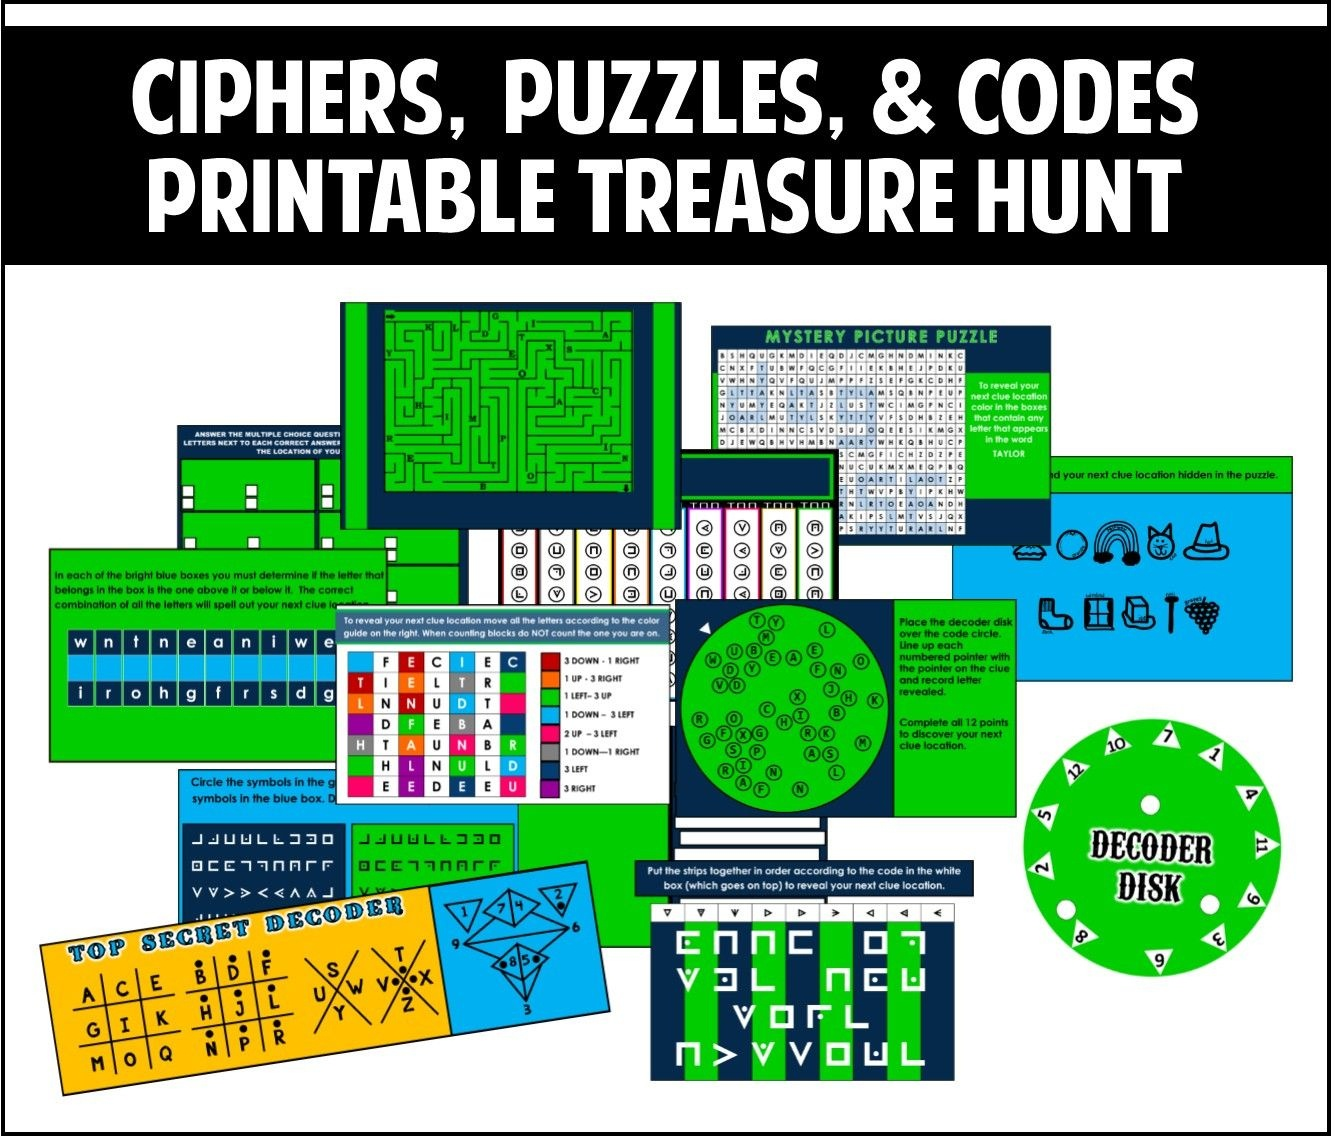 This Printable Treasure Hunt Is All About Ciphers, Puzzles, And - Printable Escape Room Free